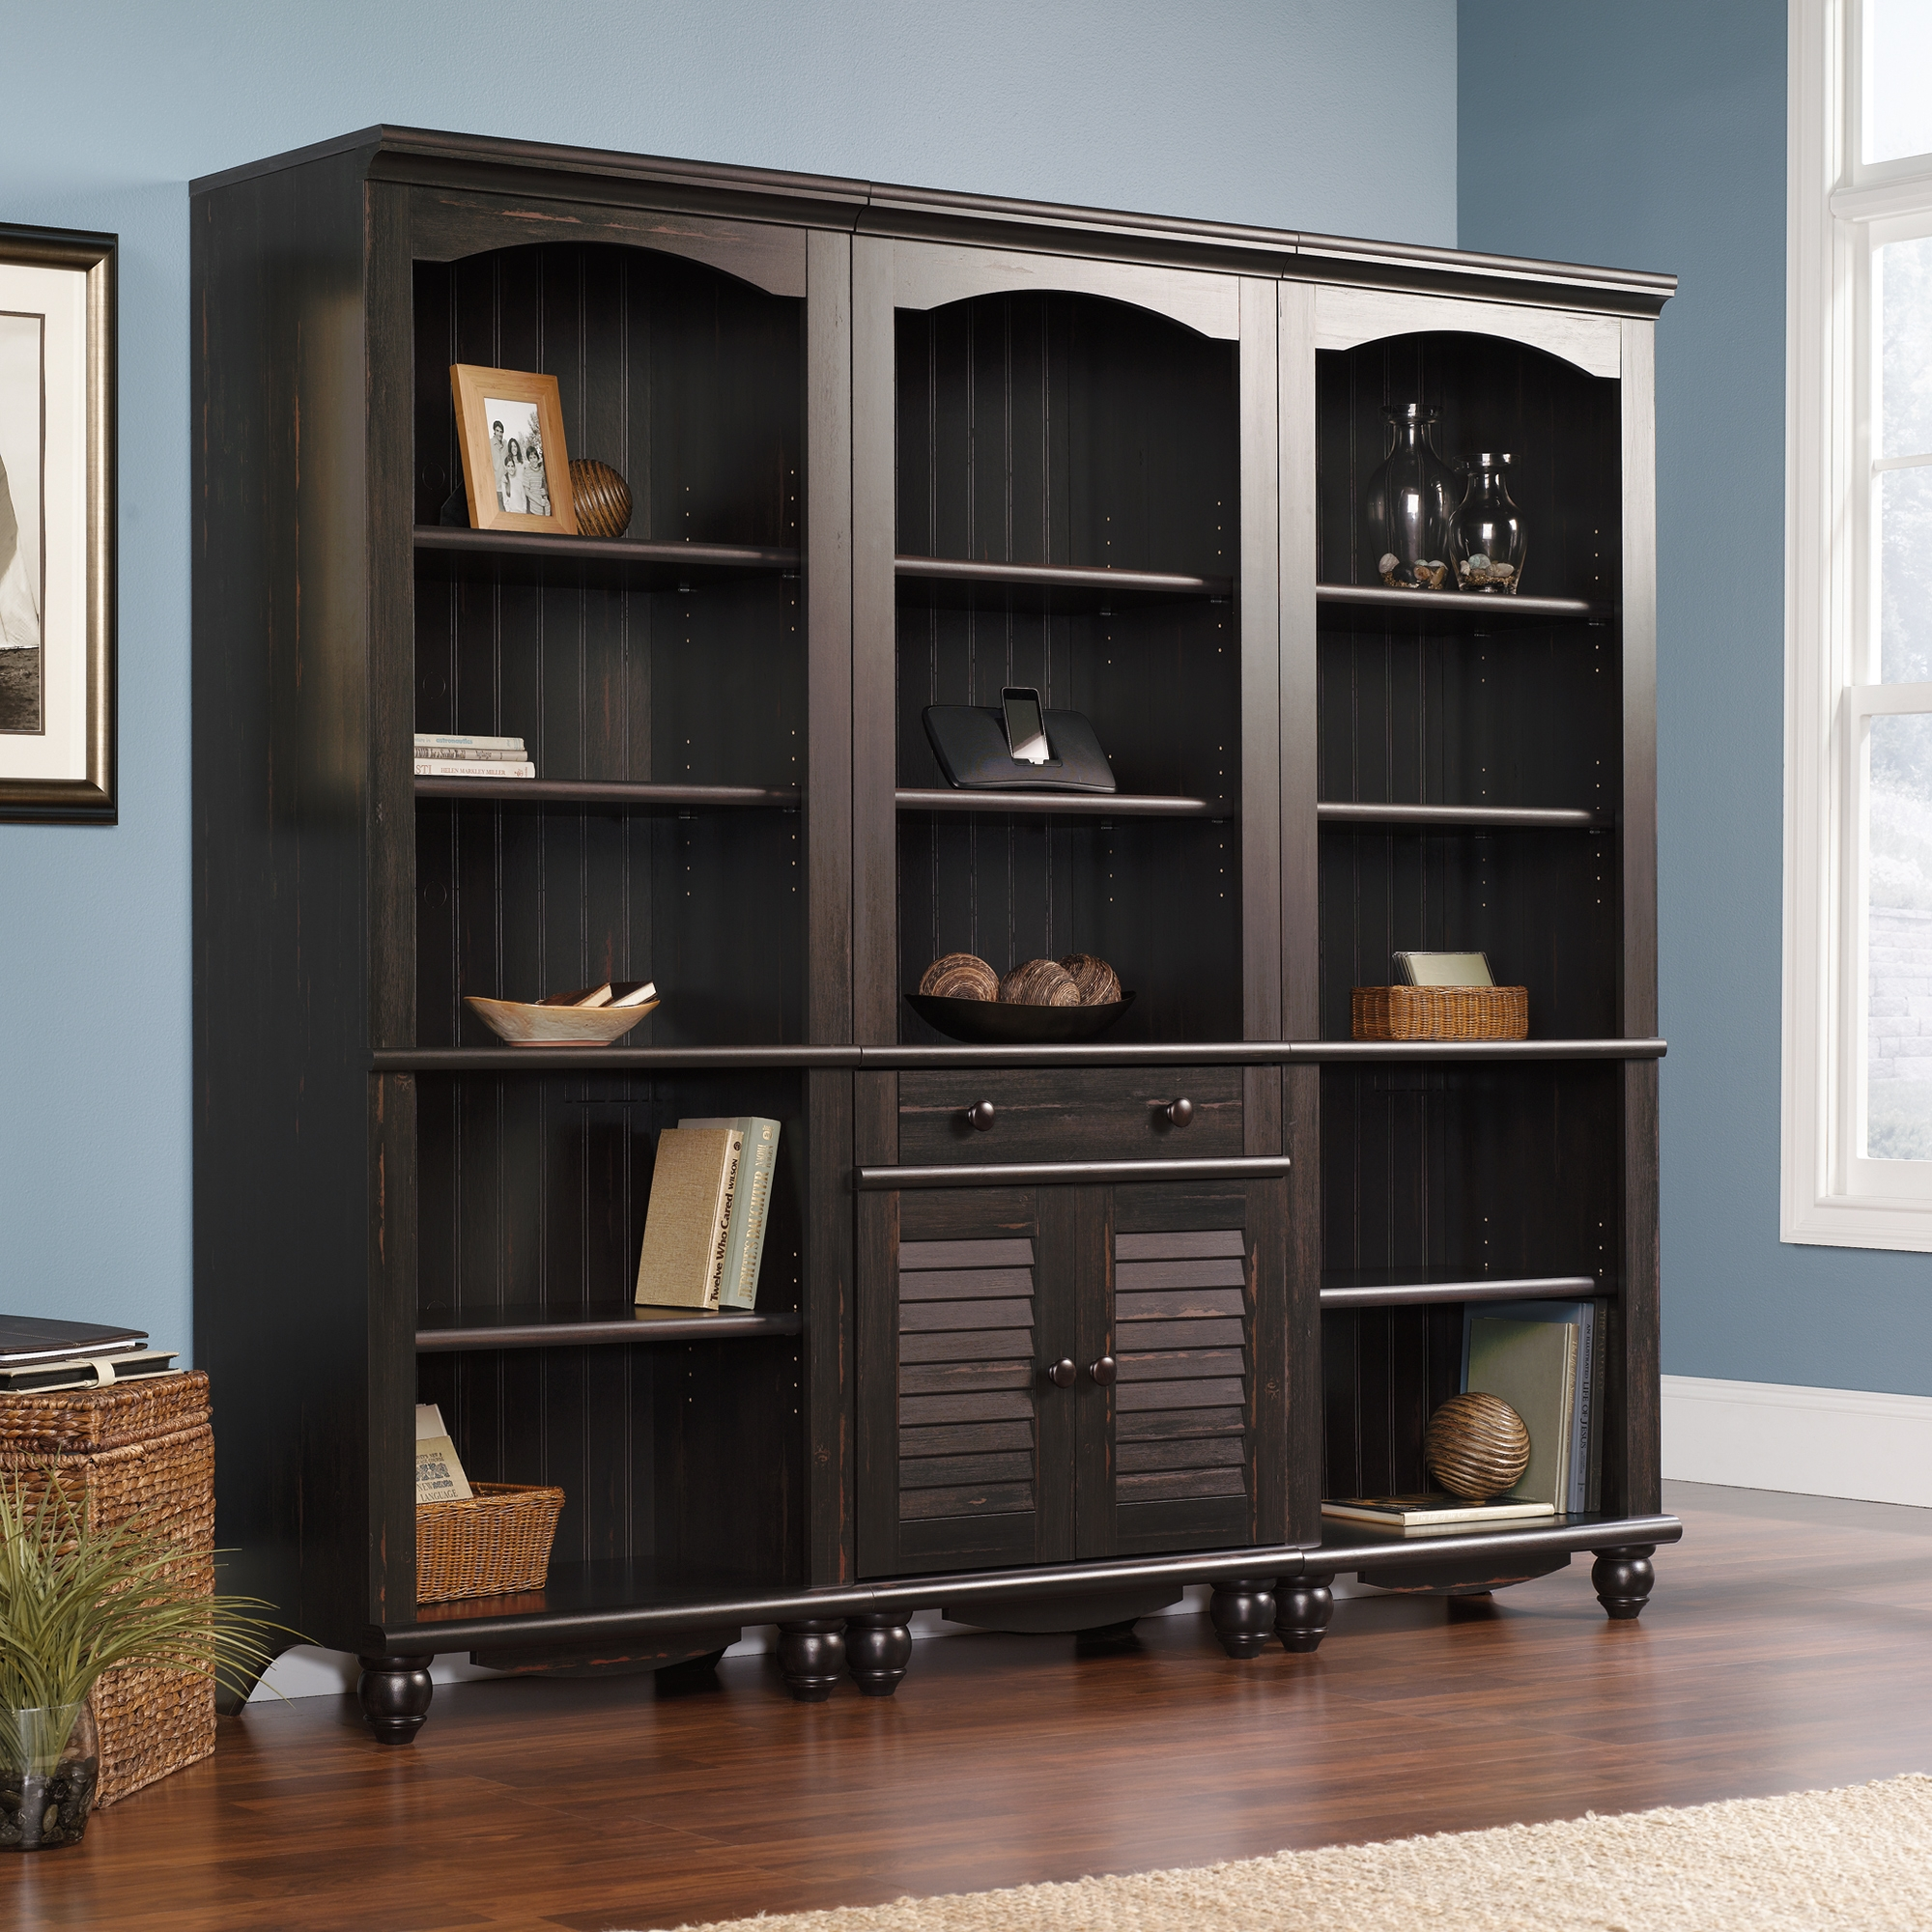 Inspiration about Harbor View Library With Doors 401632 Sauder Inside Wall Library Bookcase (#14 of 15)